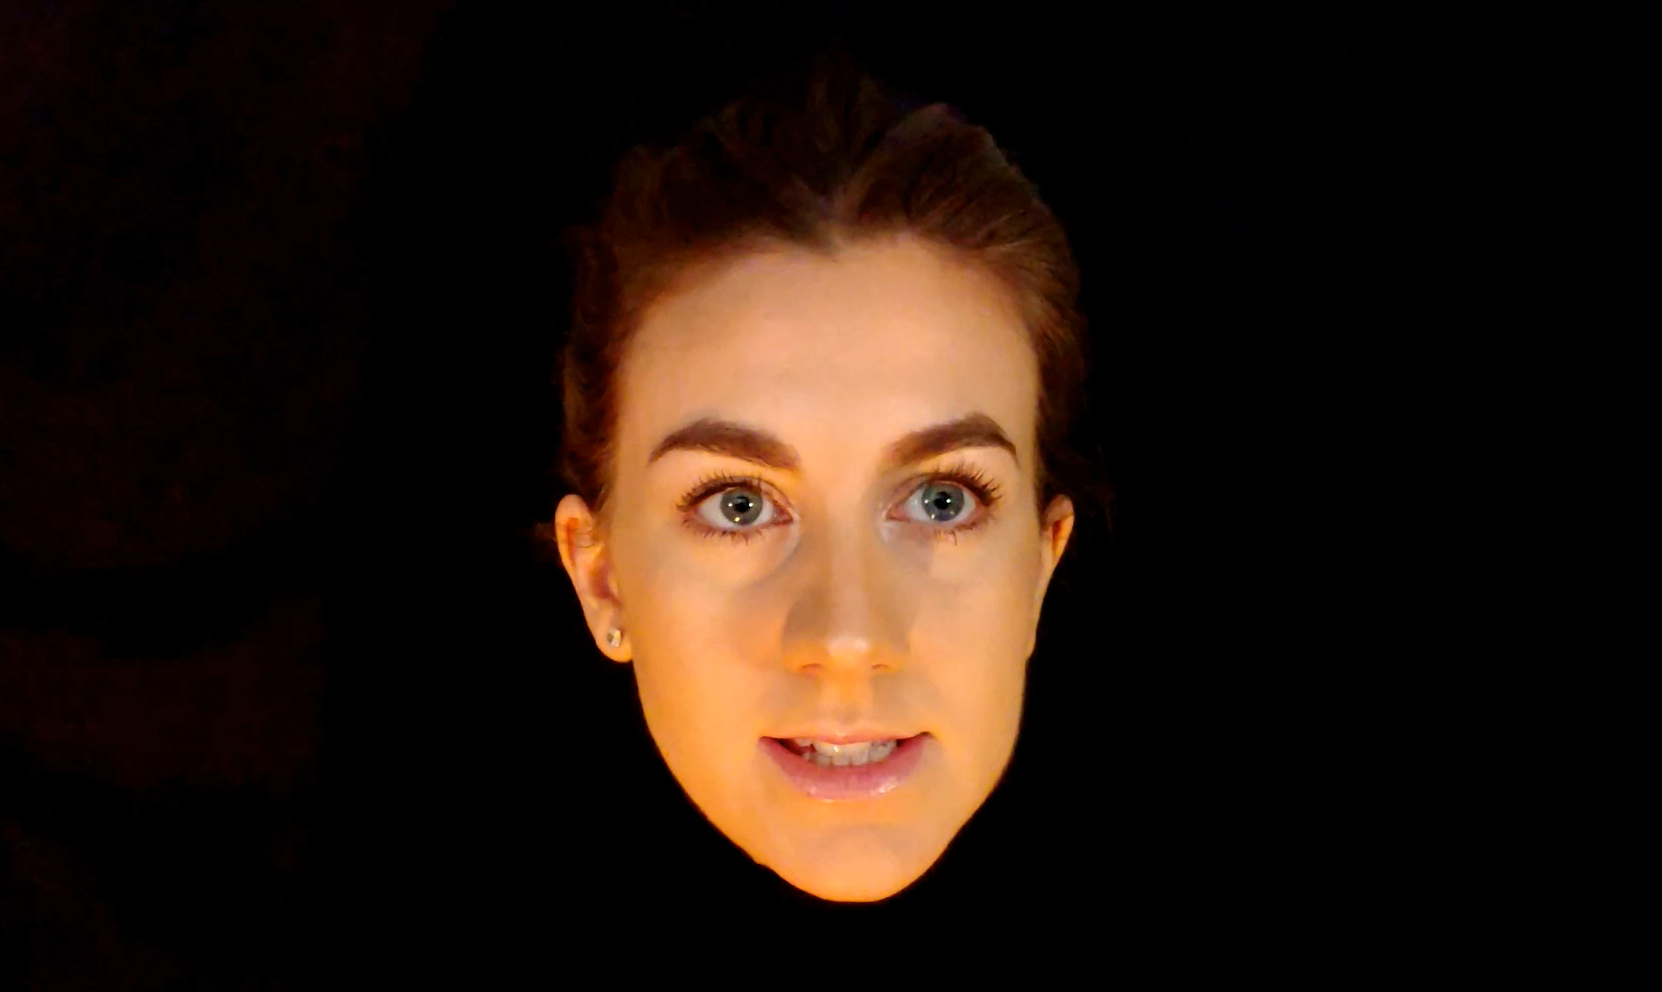 Presenter face for a hologram